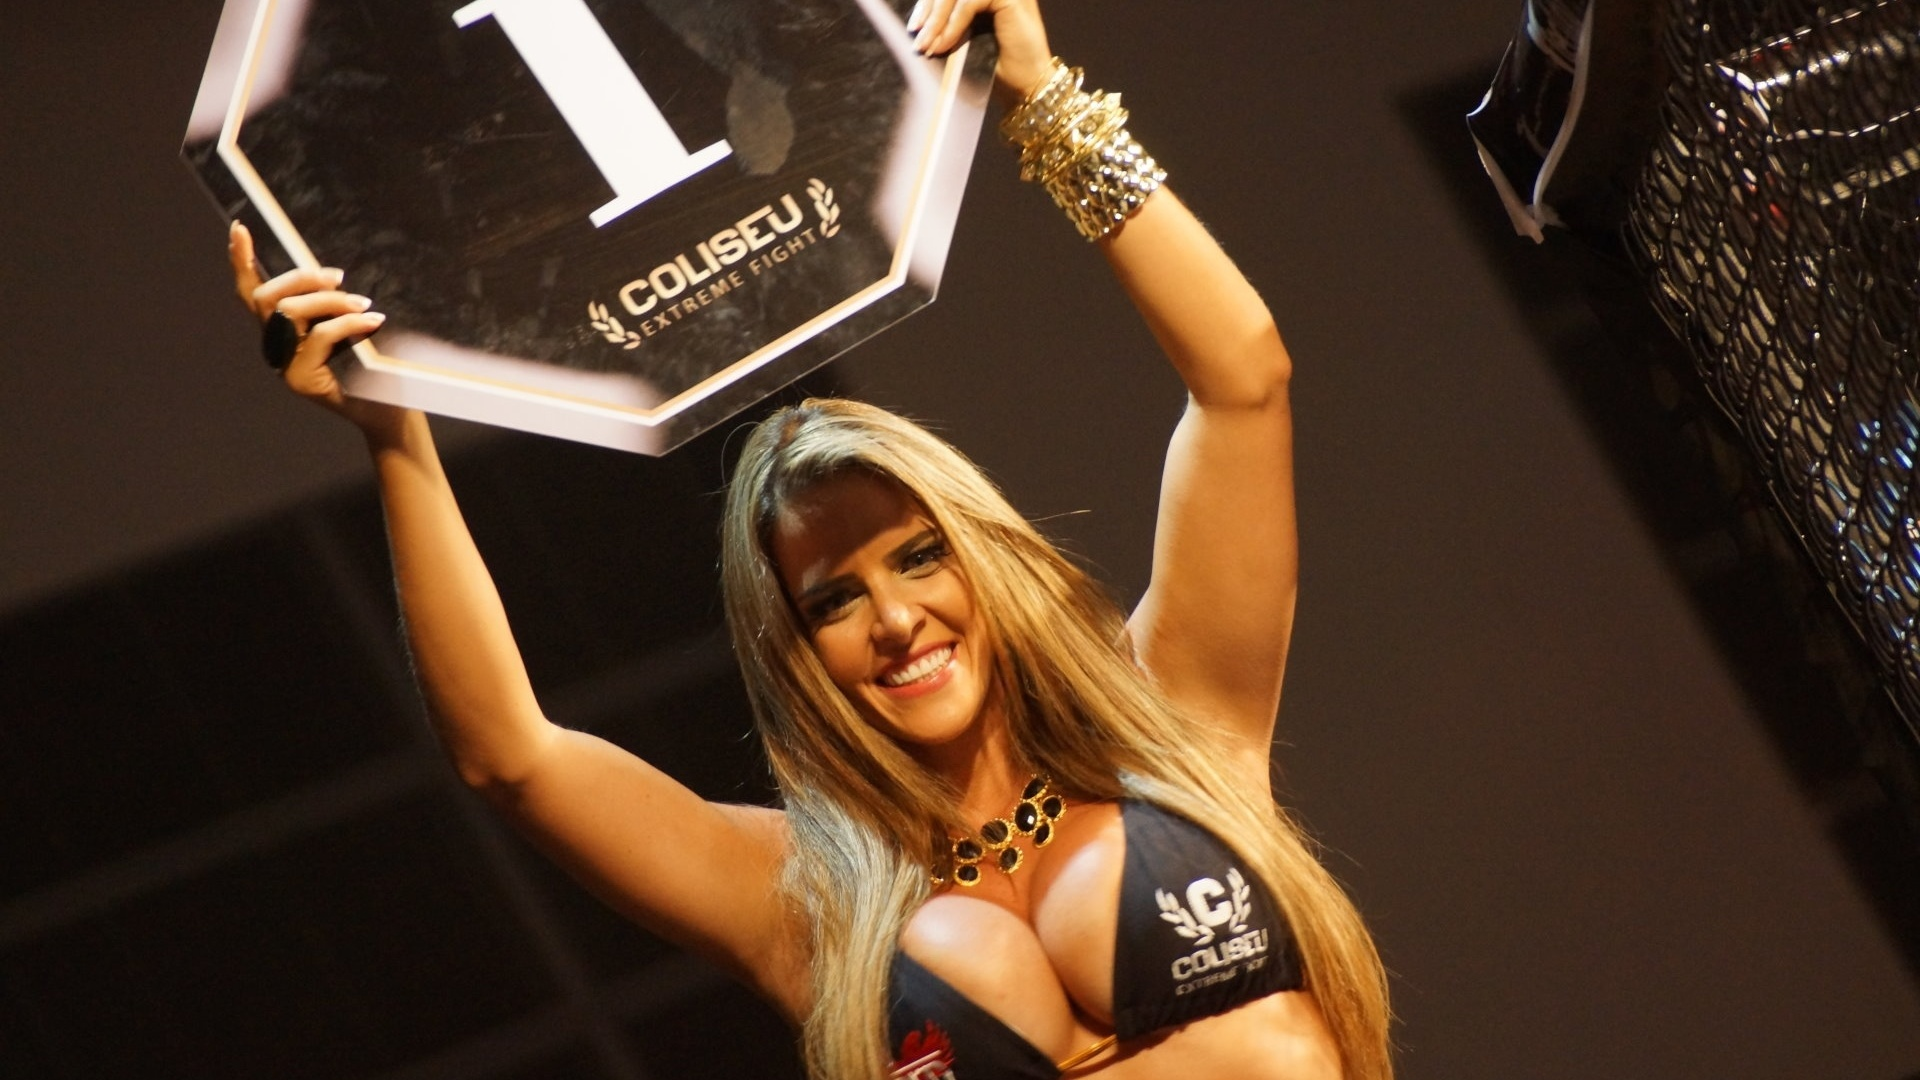 Denise Rocha, o Furaco da CPI, estreou como ring girl no Coliseu Extreme Fight, em Macei